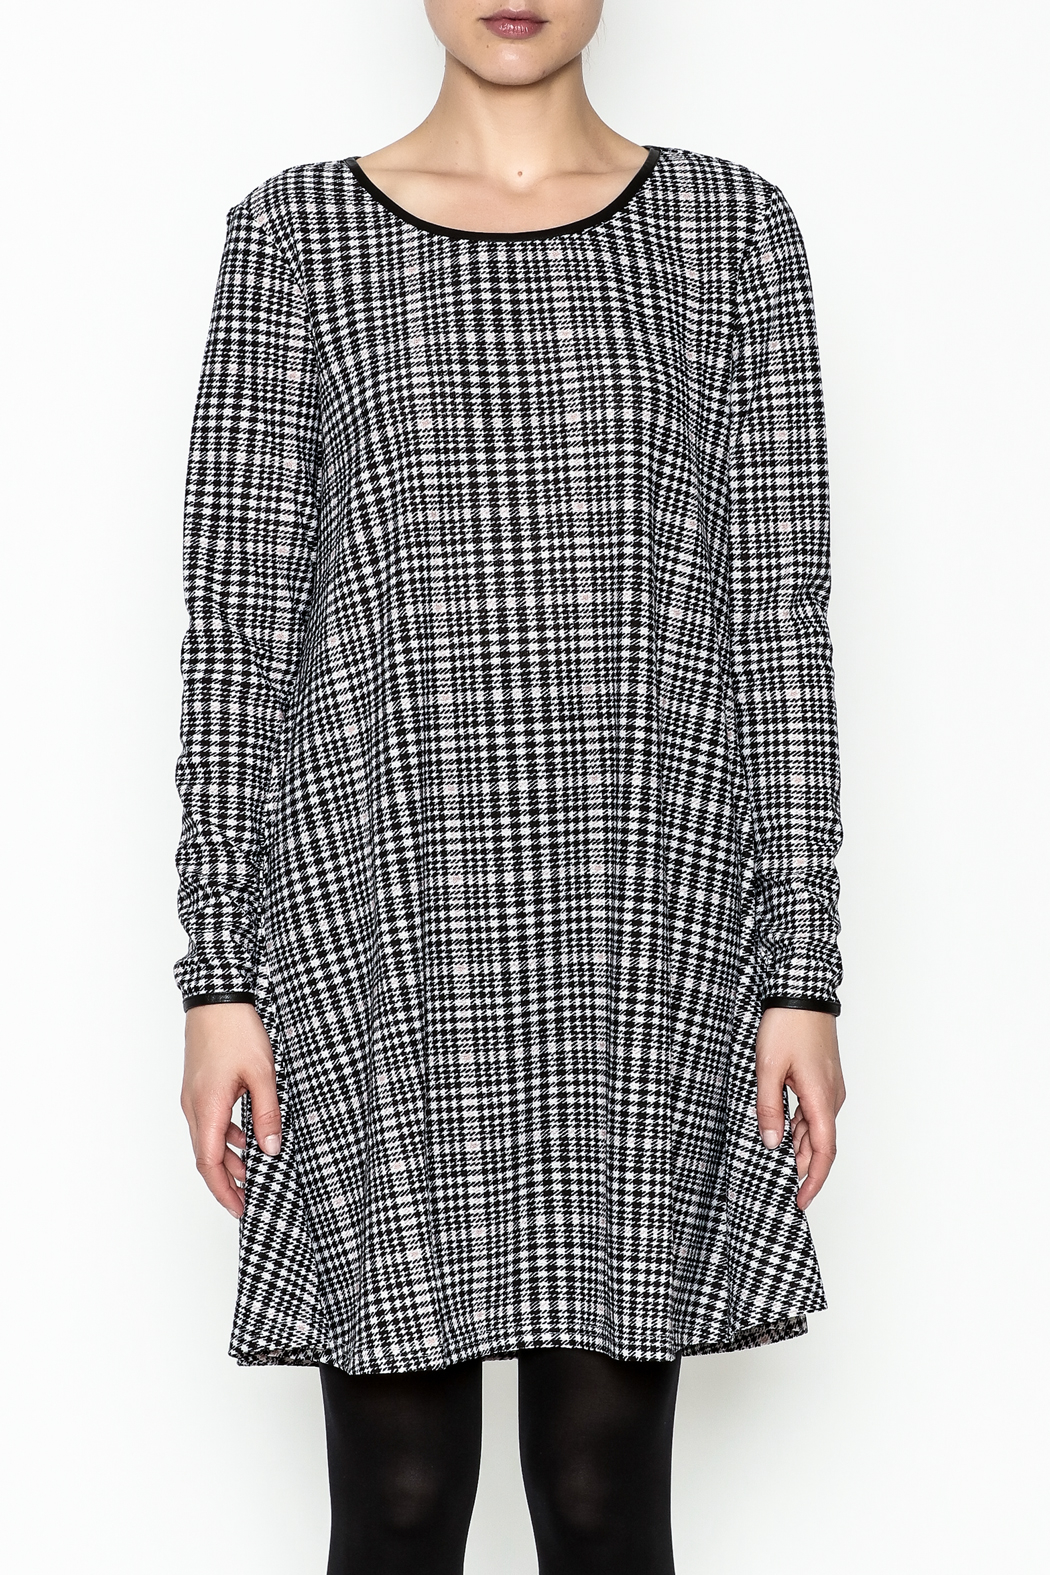 Charlie Paige Houndstooth Check Dress - Front Full Image